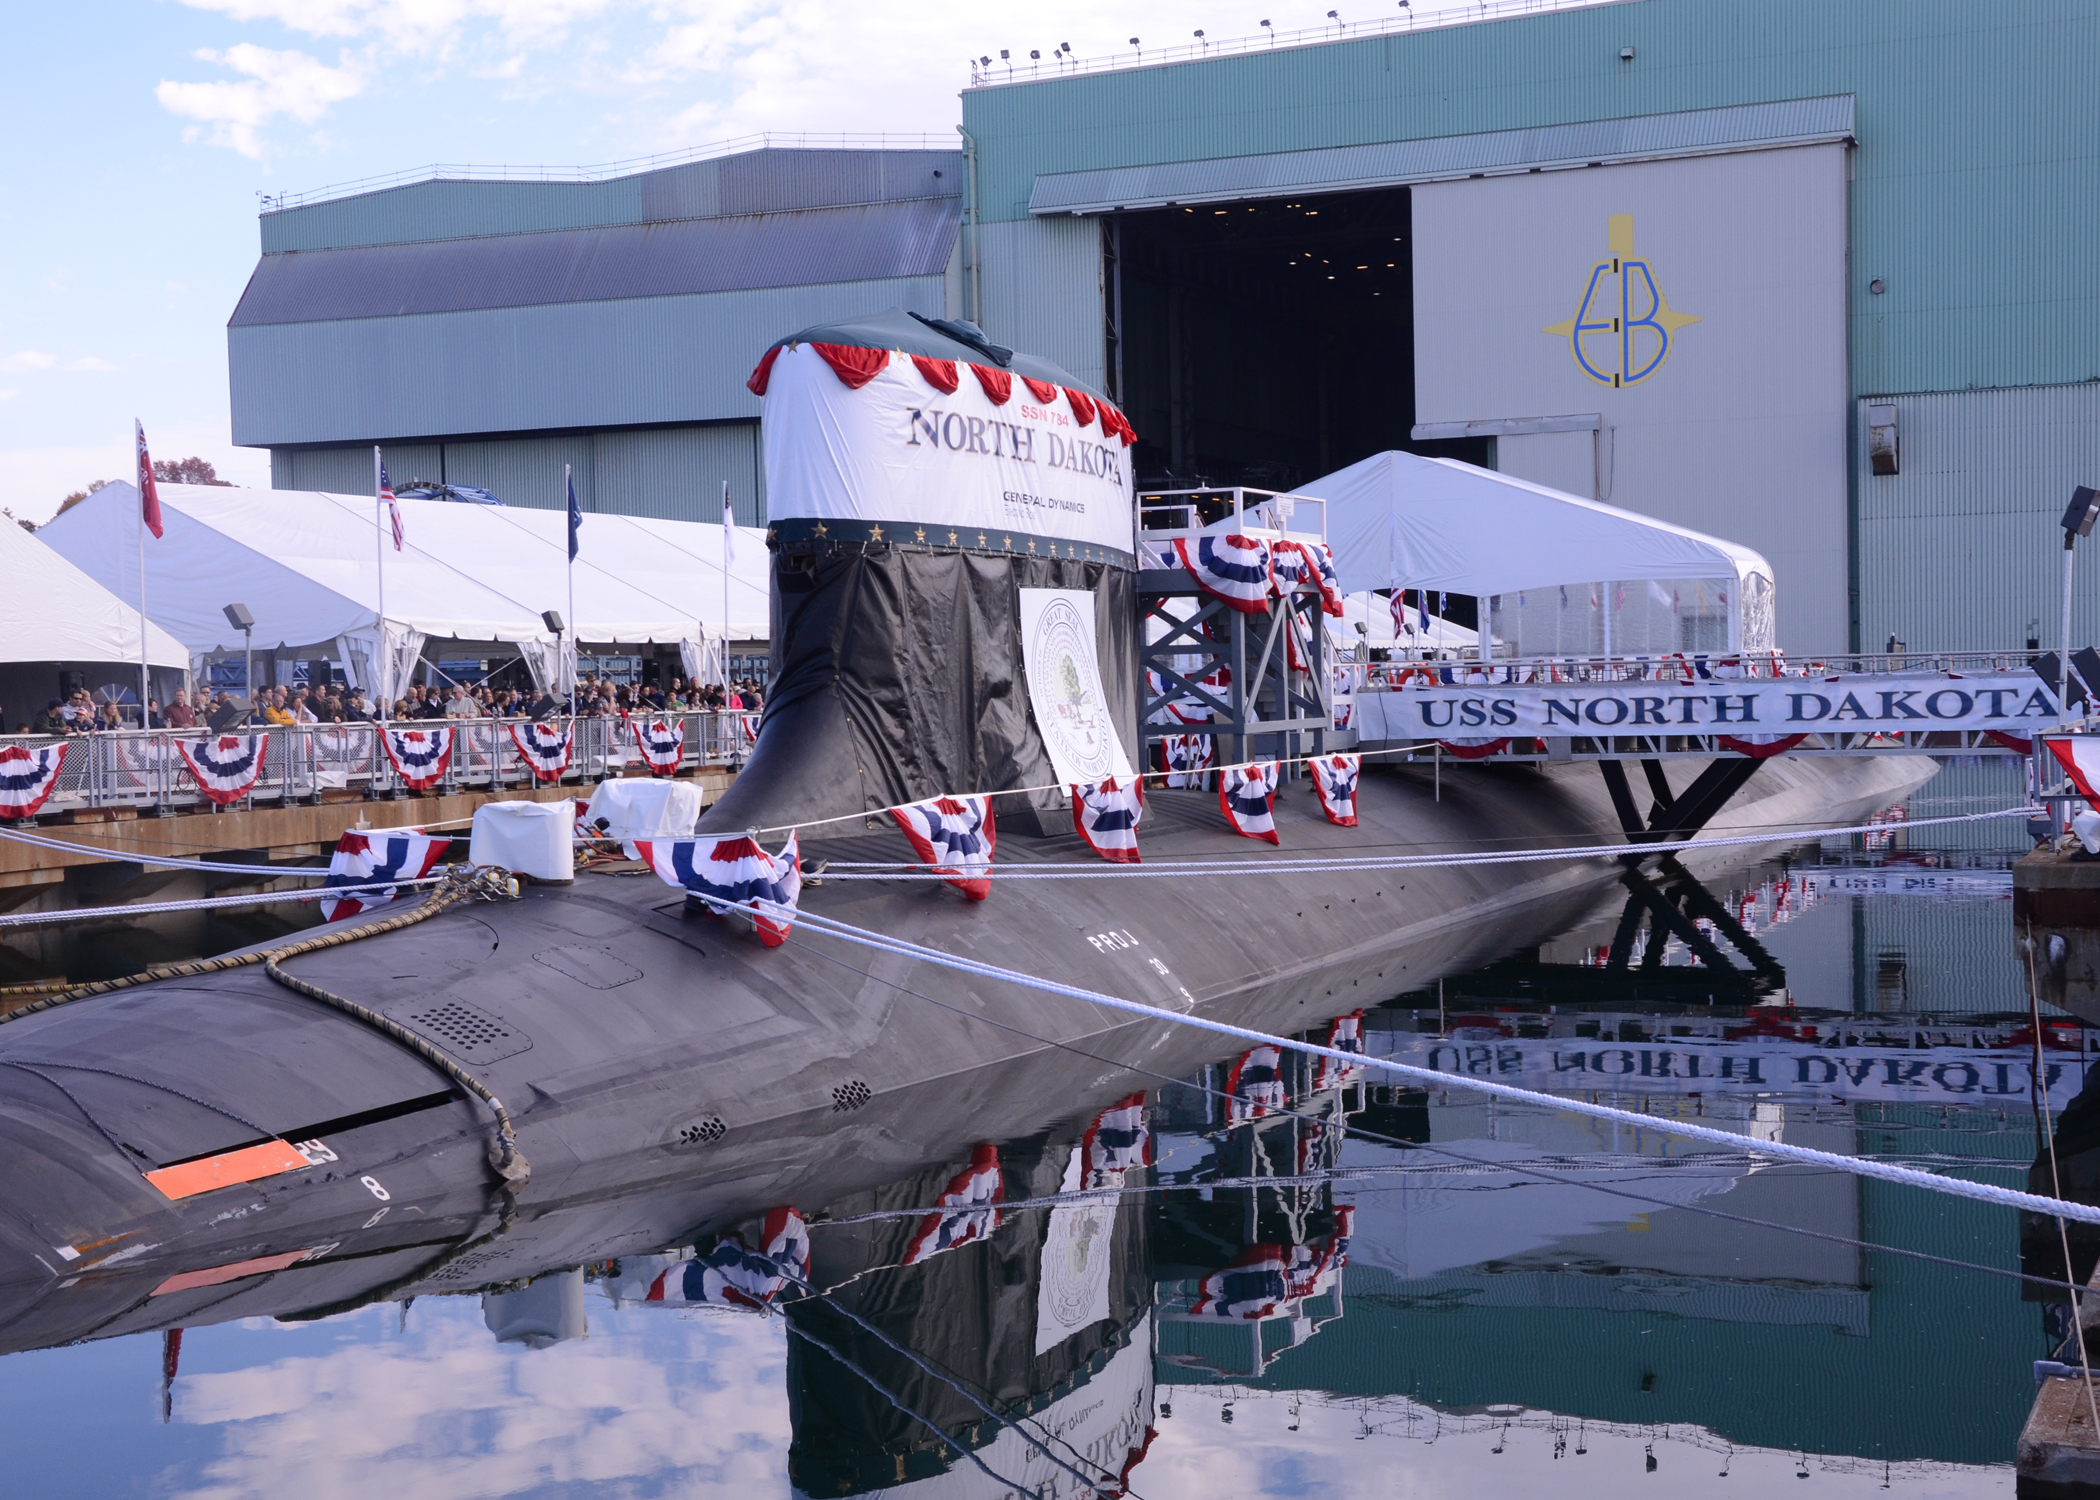 USS NORTH DAKOTA SSN-784 ChristeningBild: U.S. Navy